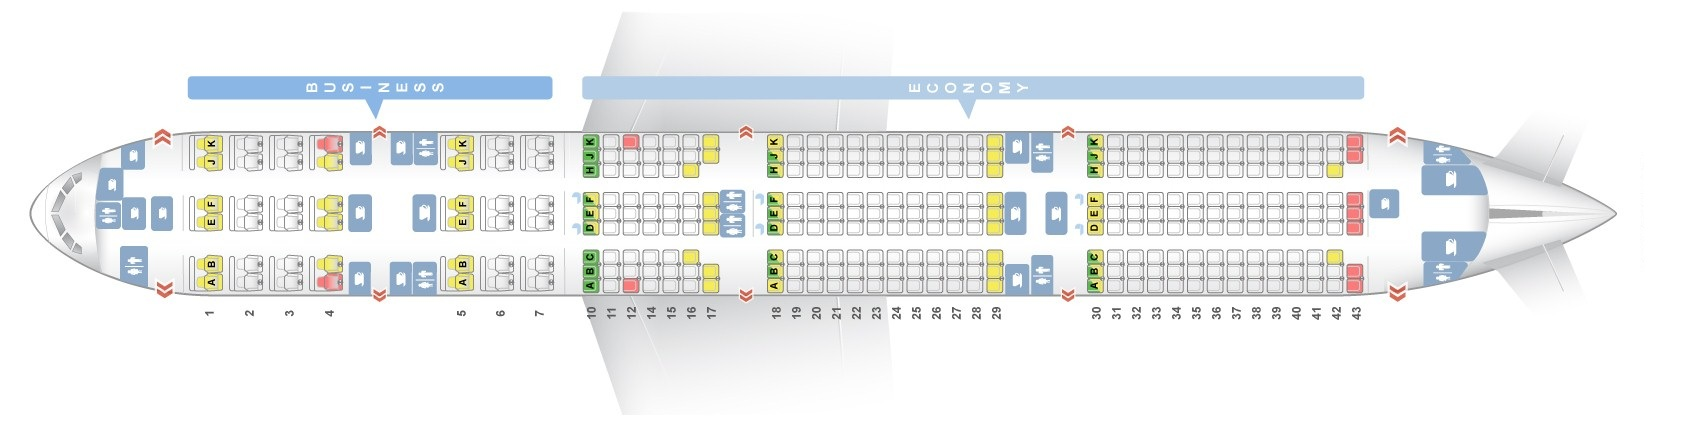 Seat Map And Seating Chart Boeing 777 300er Qatar Airways V3